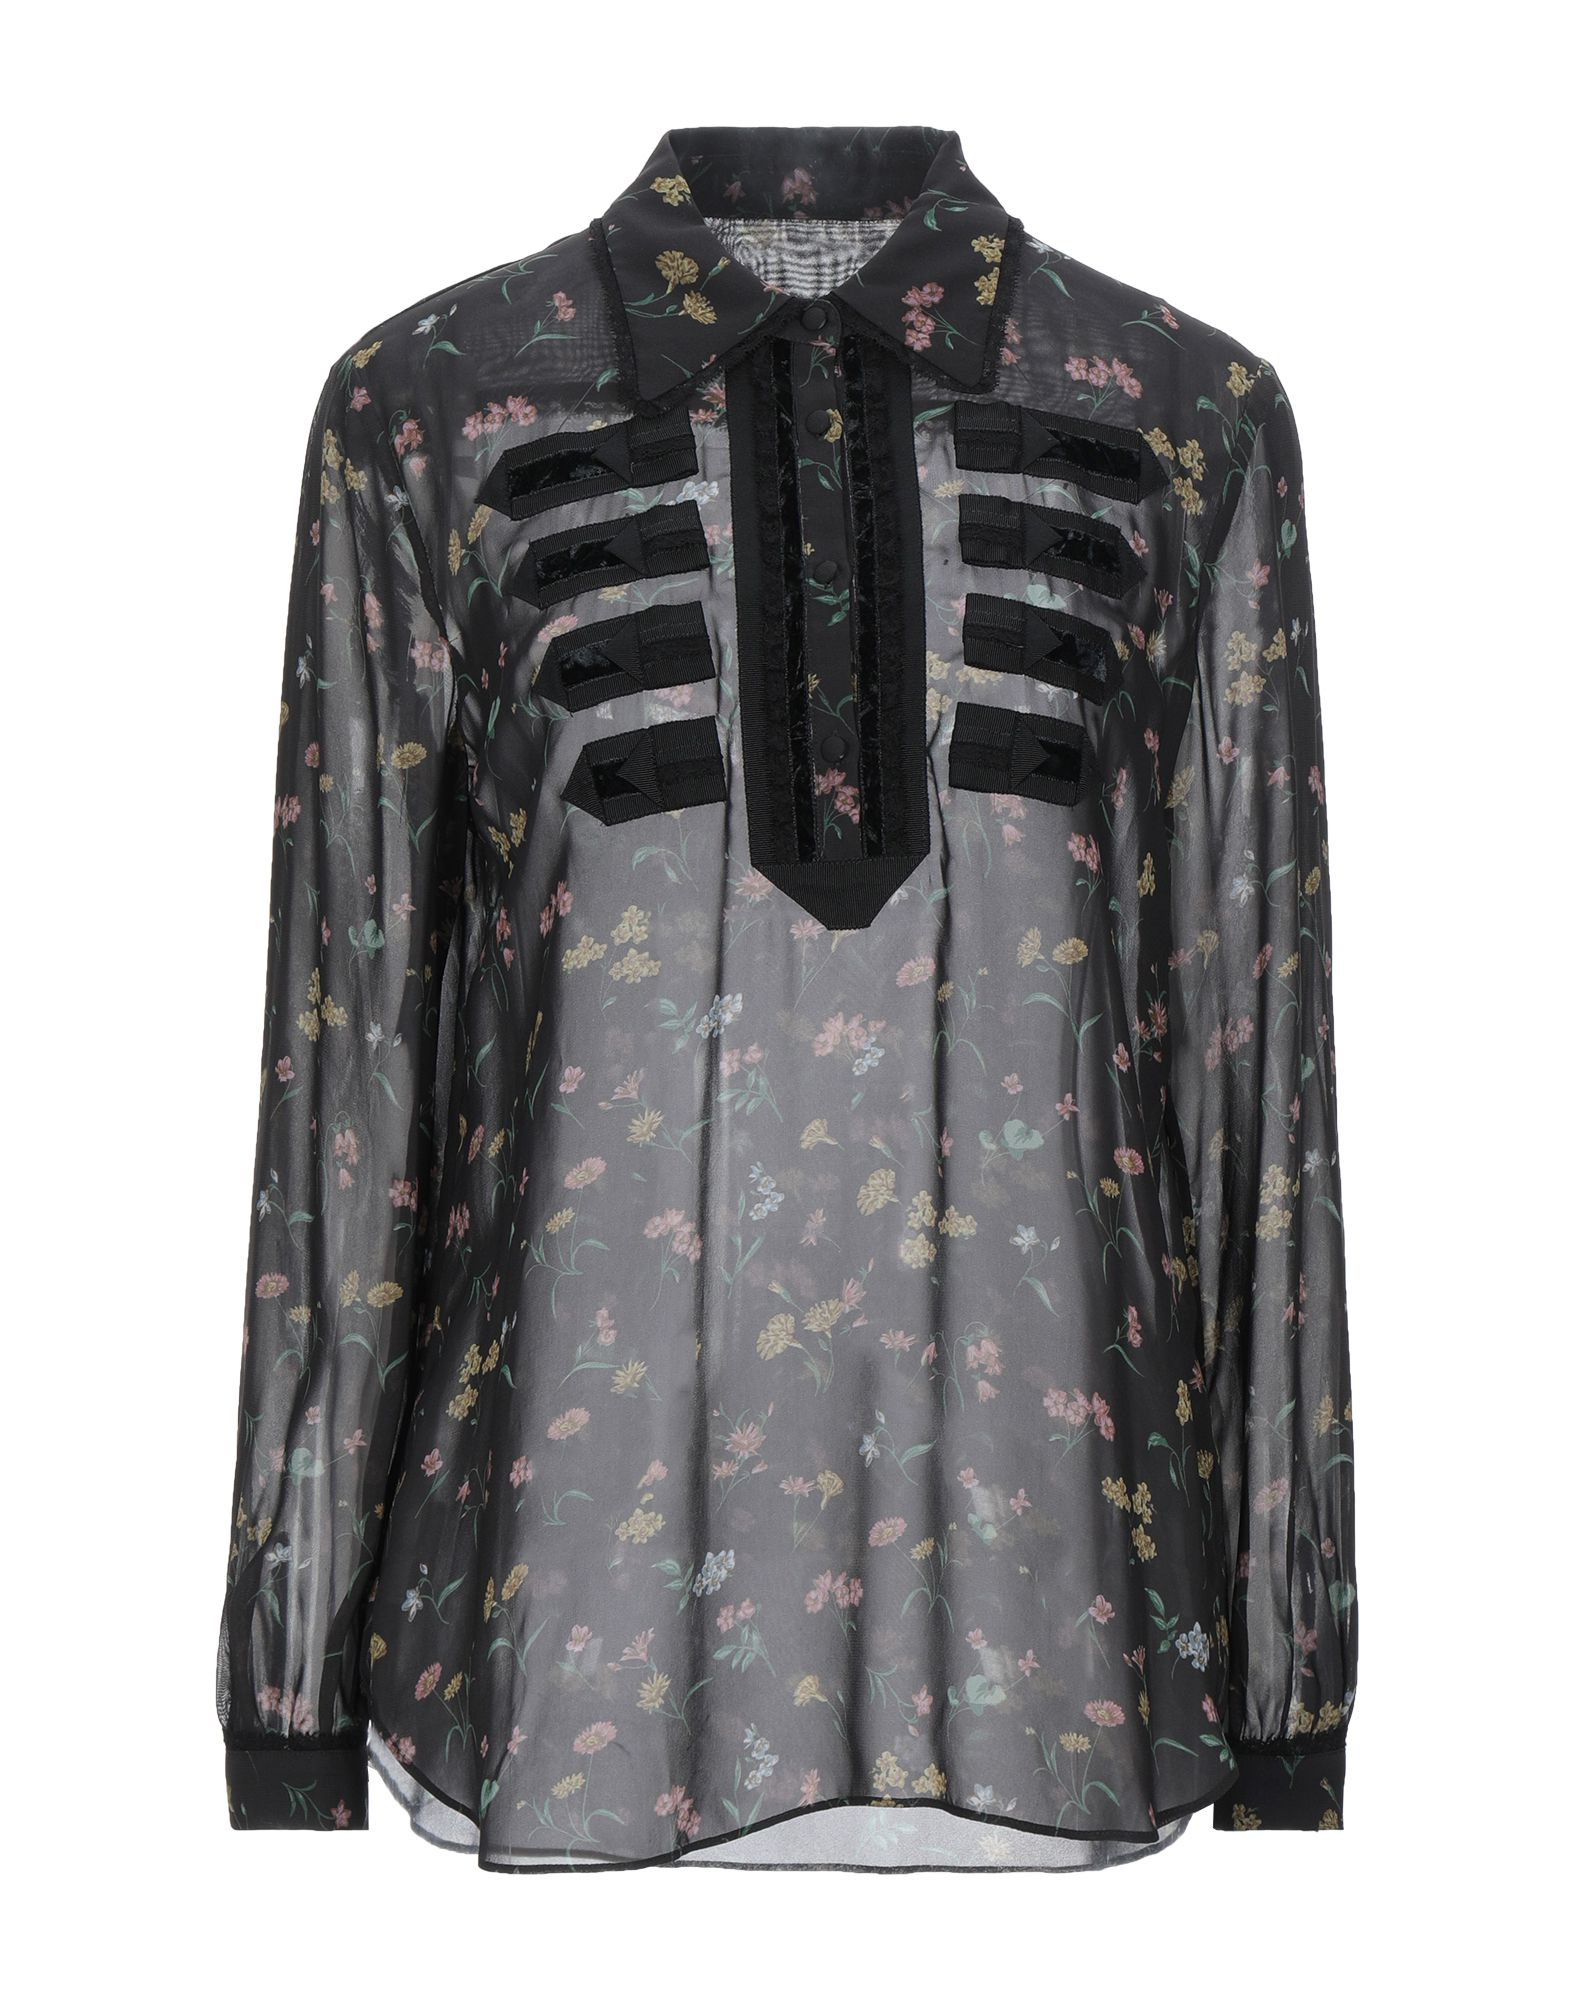 COACH Blouses. voile, contrasting applications, floral design, front closure, button closing, long sleeves, buttoned cuffs, classic neckline, no pockets. 100% Cupro